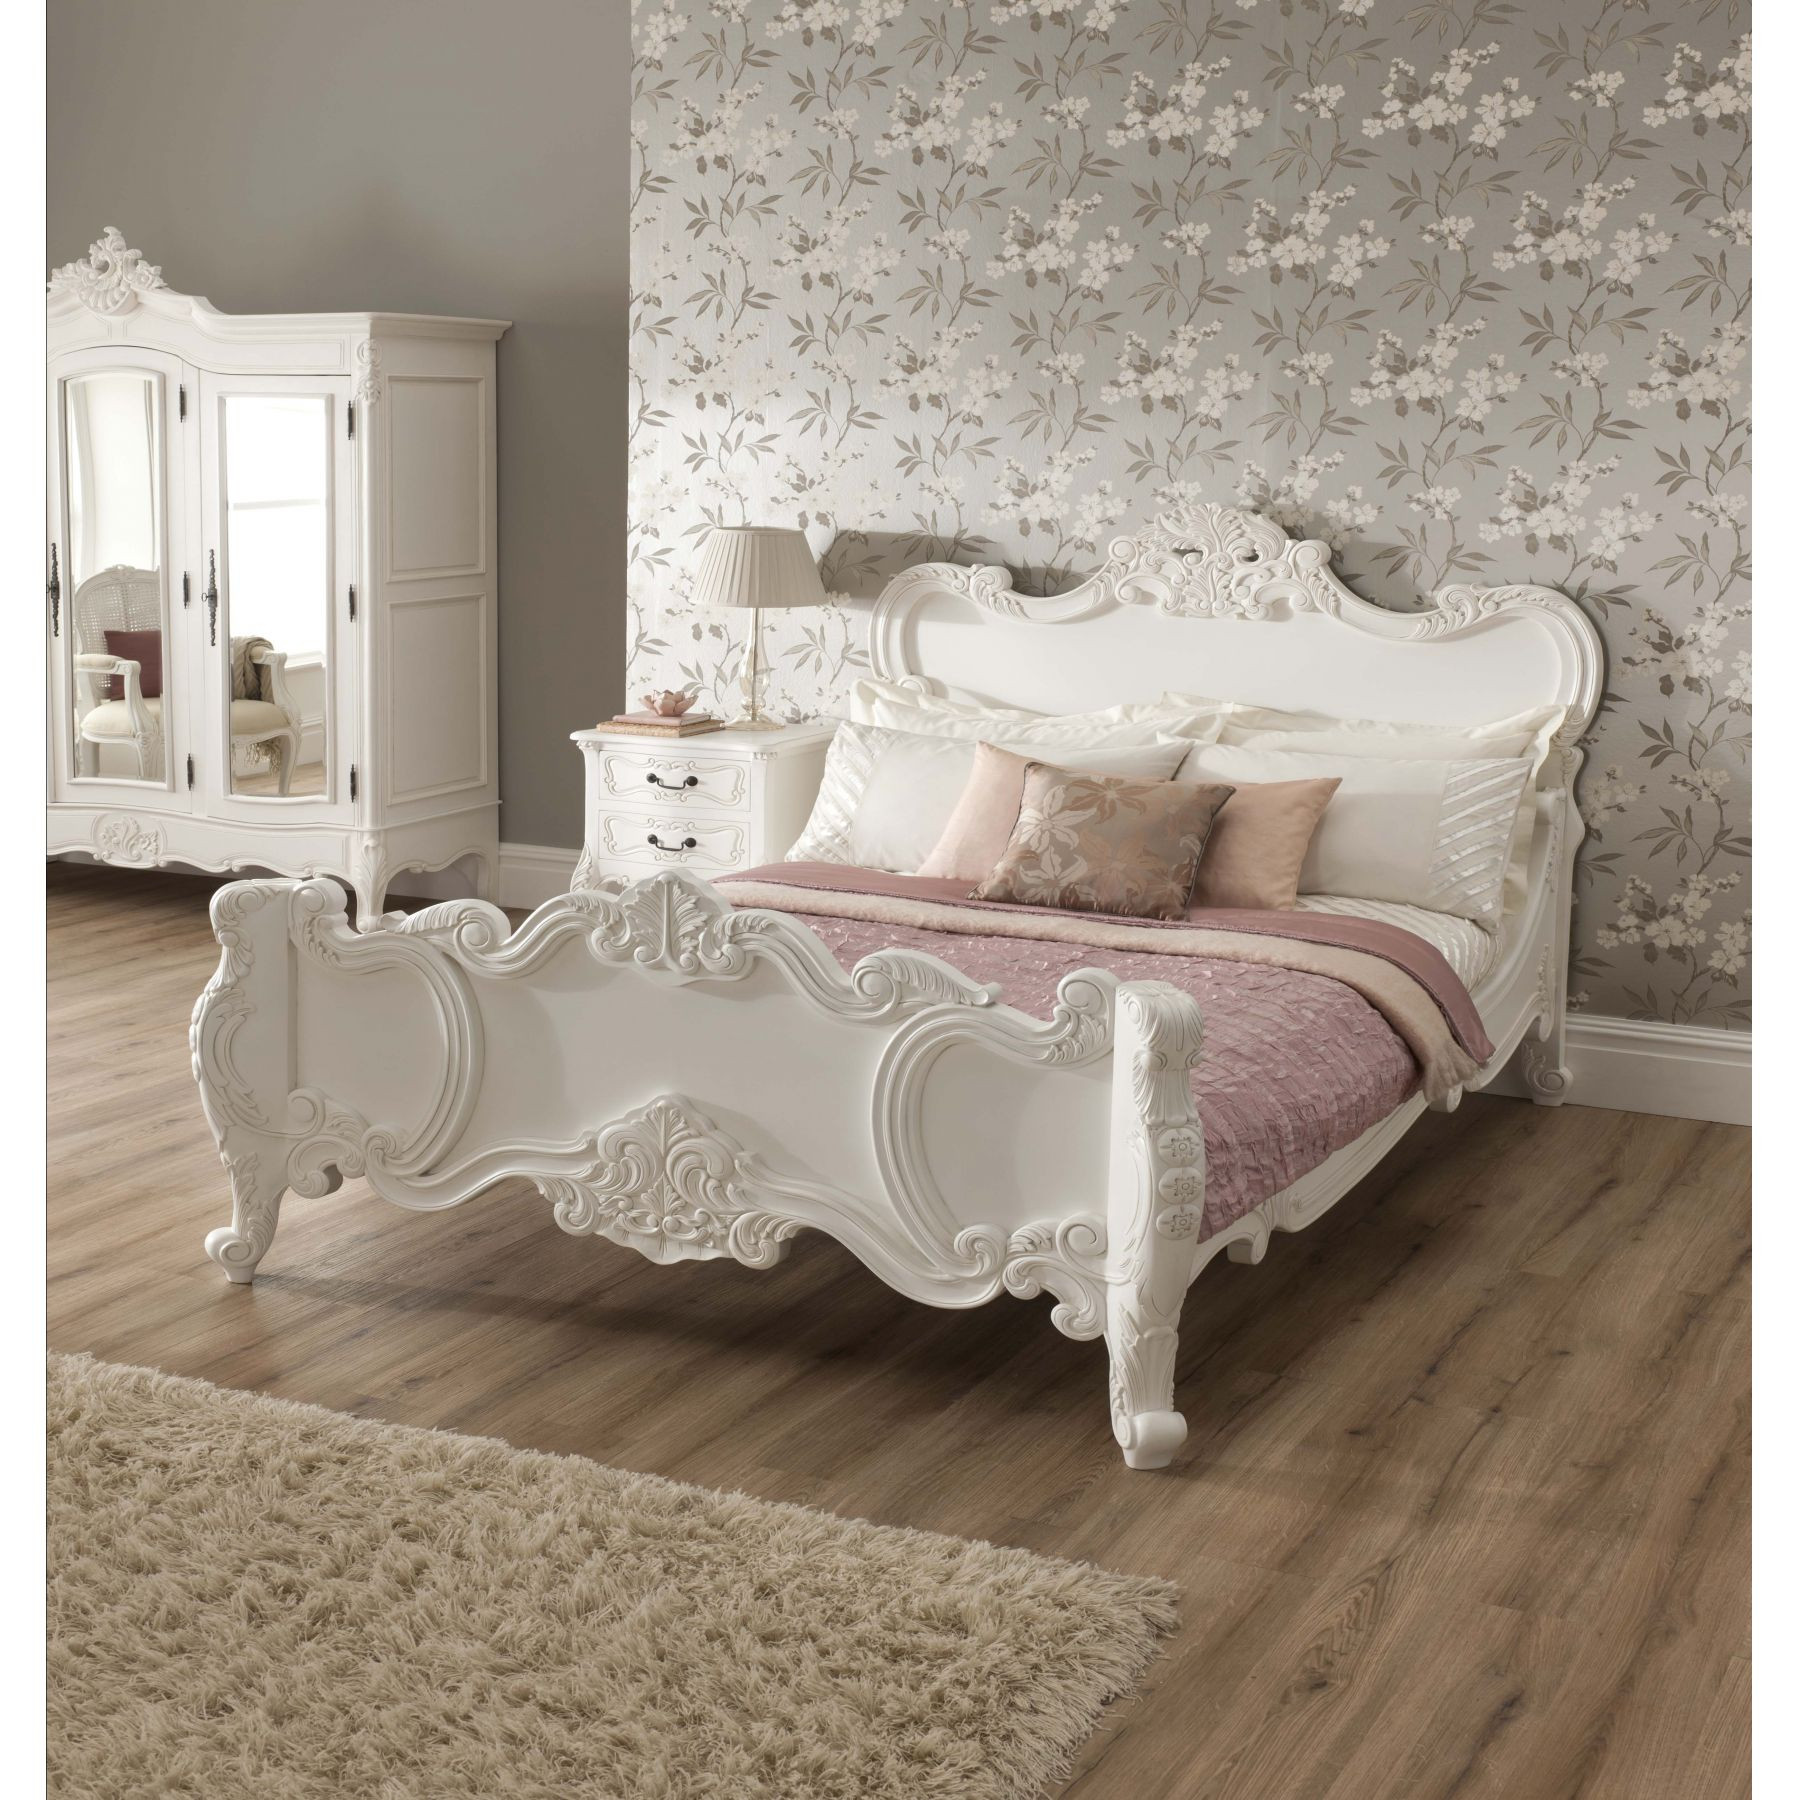 Shabby Chic Bedroom Sets Unique Vintage Your Room with 9 Shabby Chic Bedroom Furniture